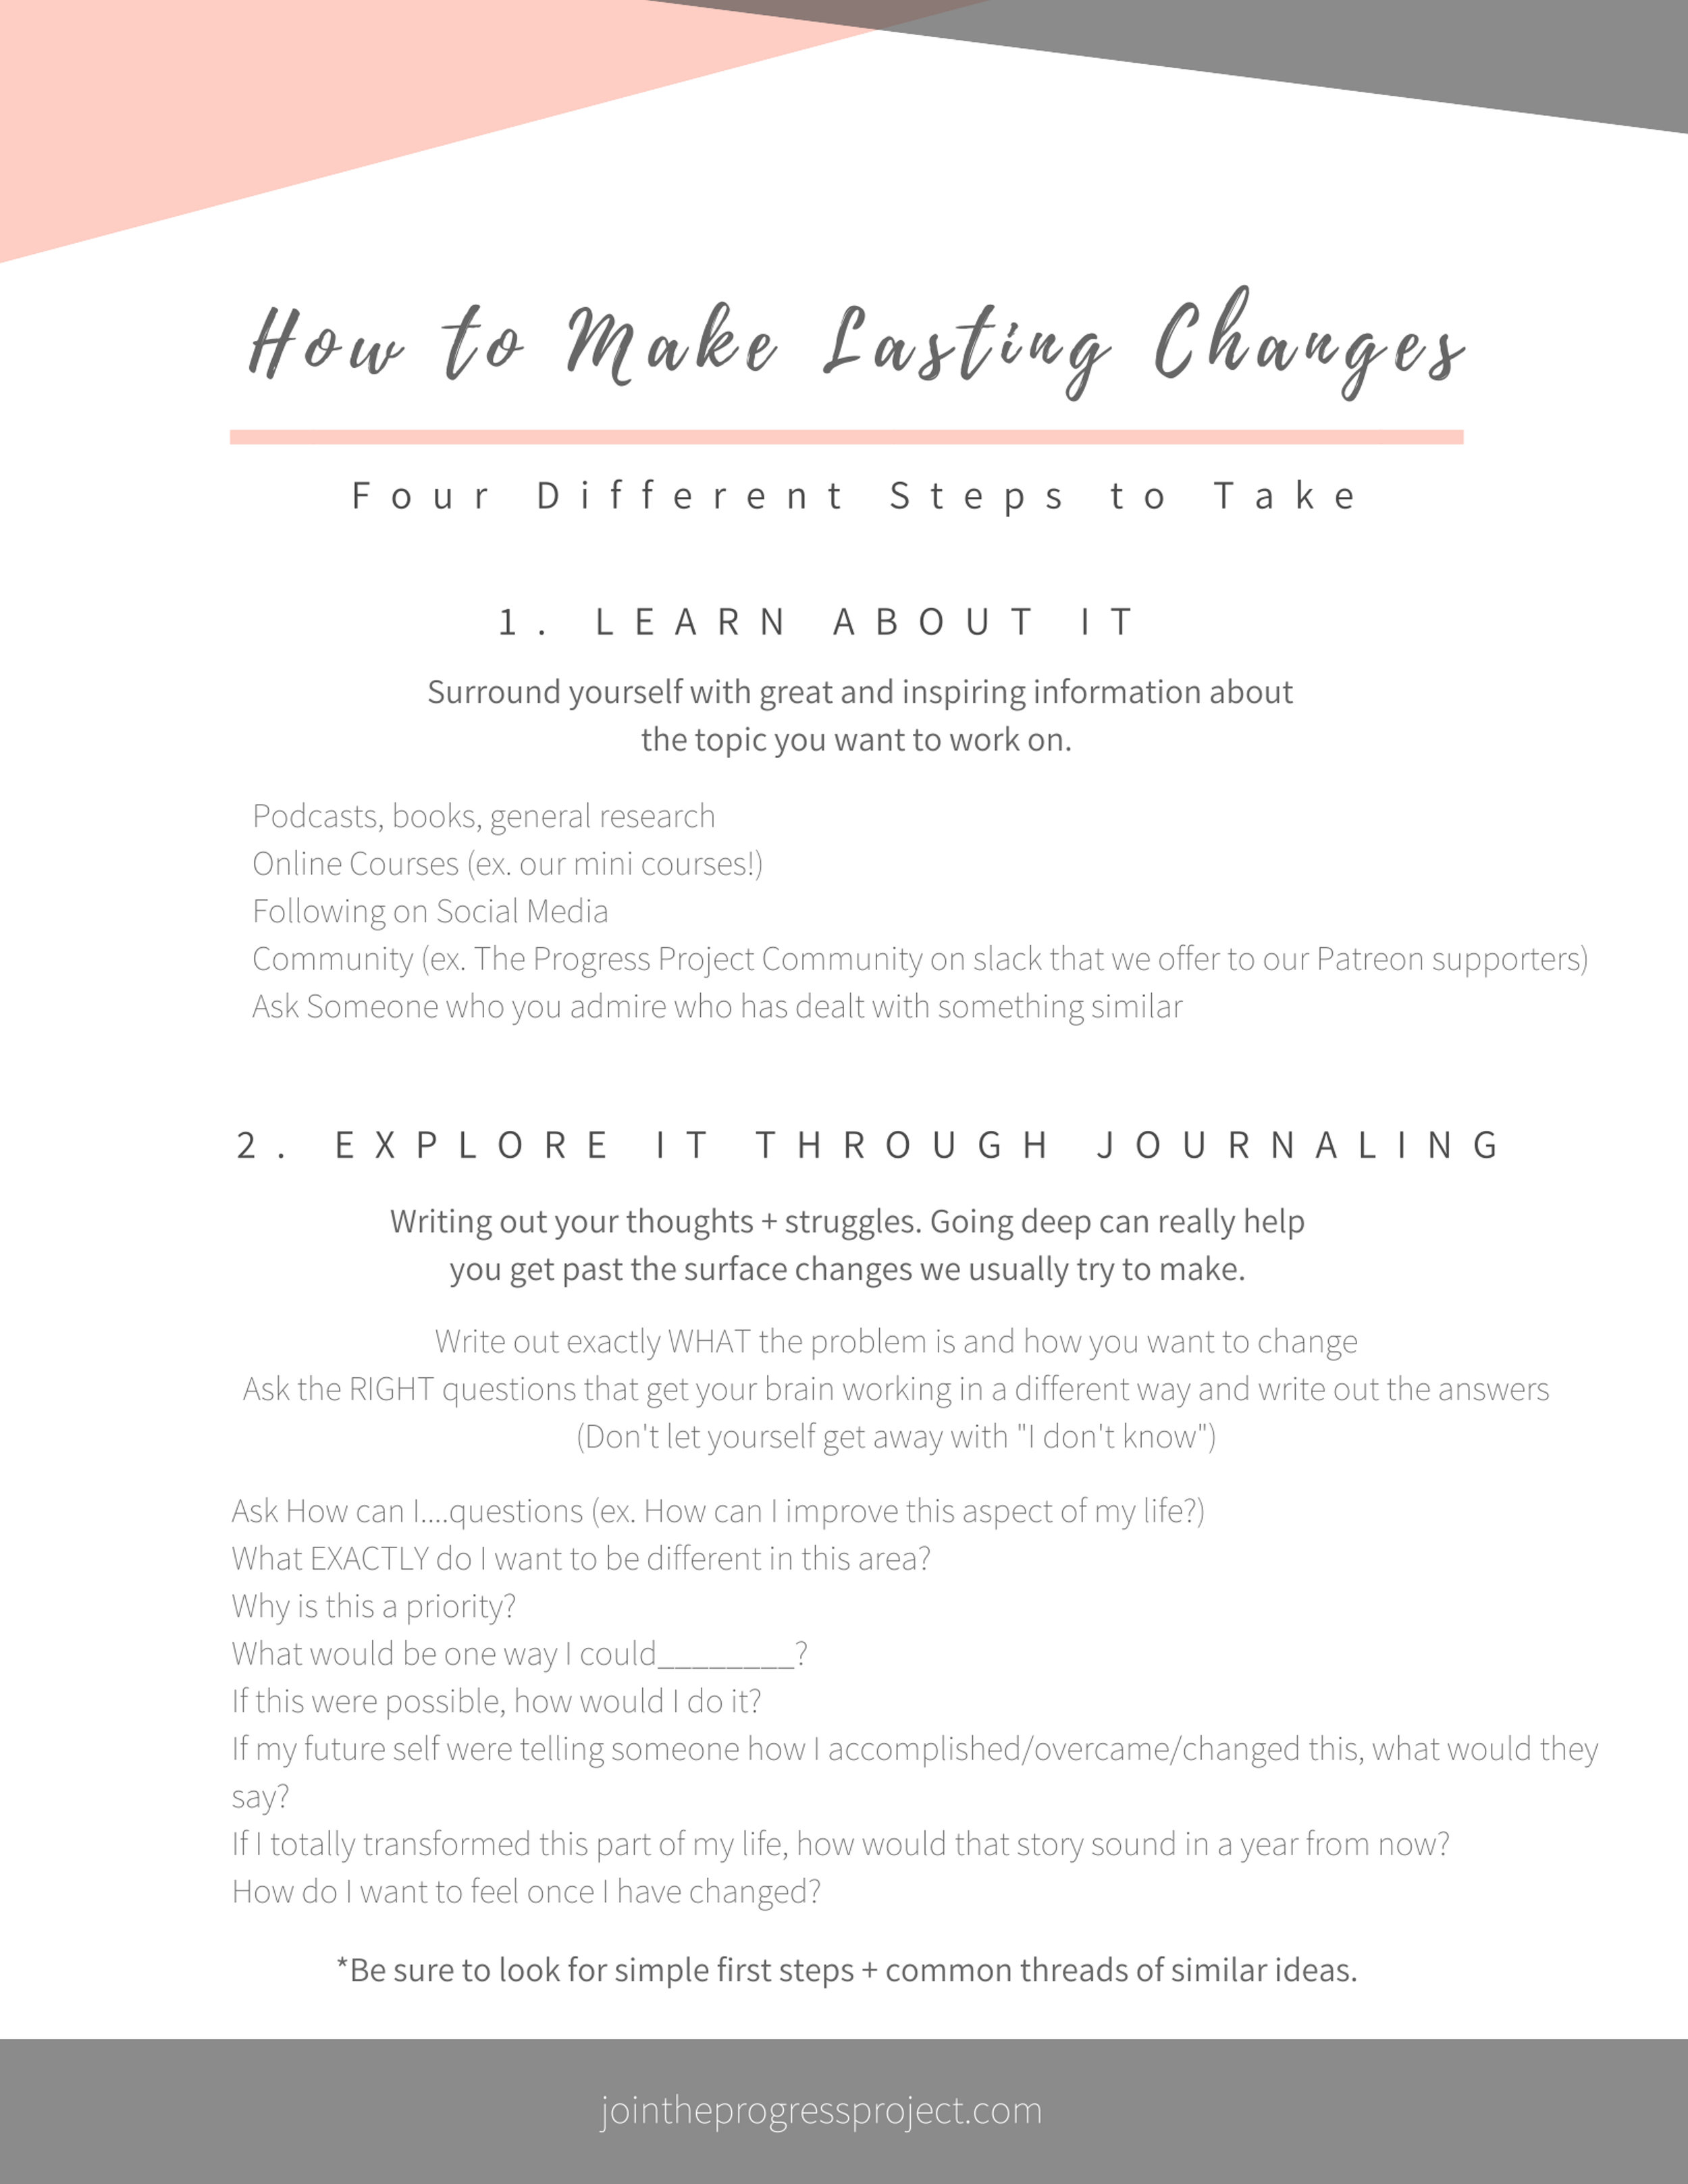 Guide for How to Make Lasting Changes